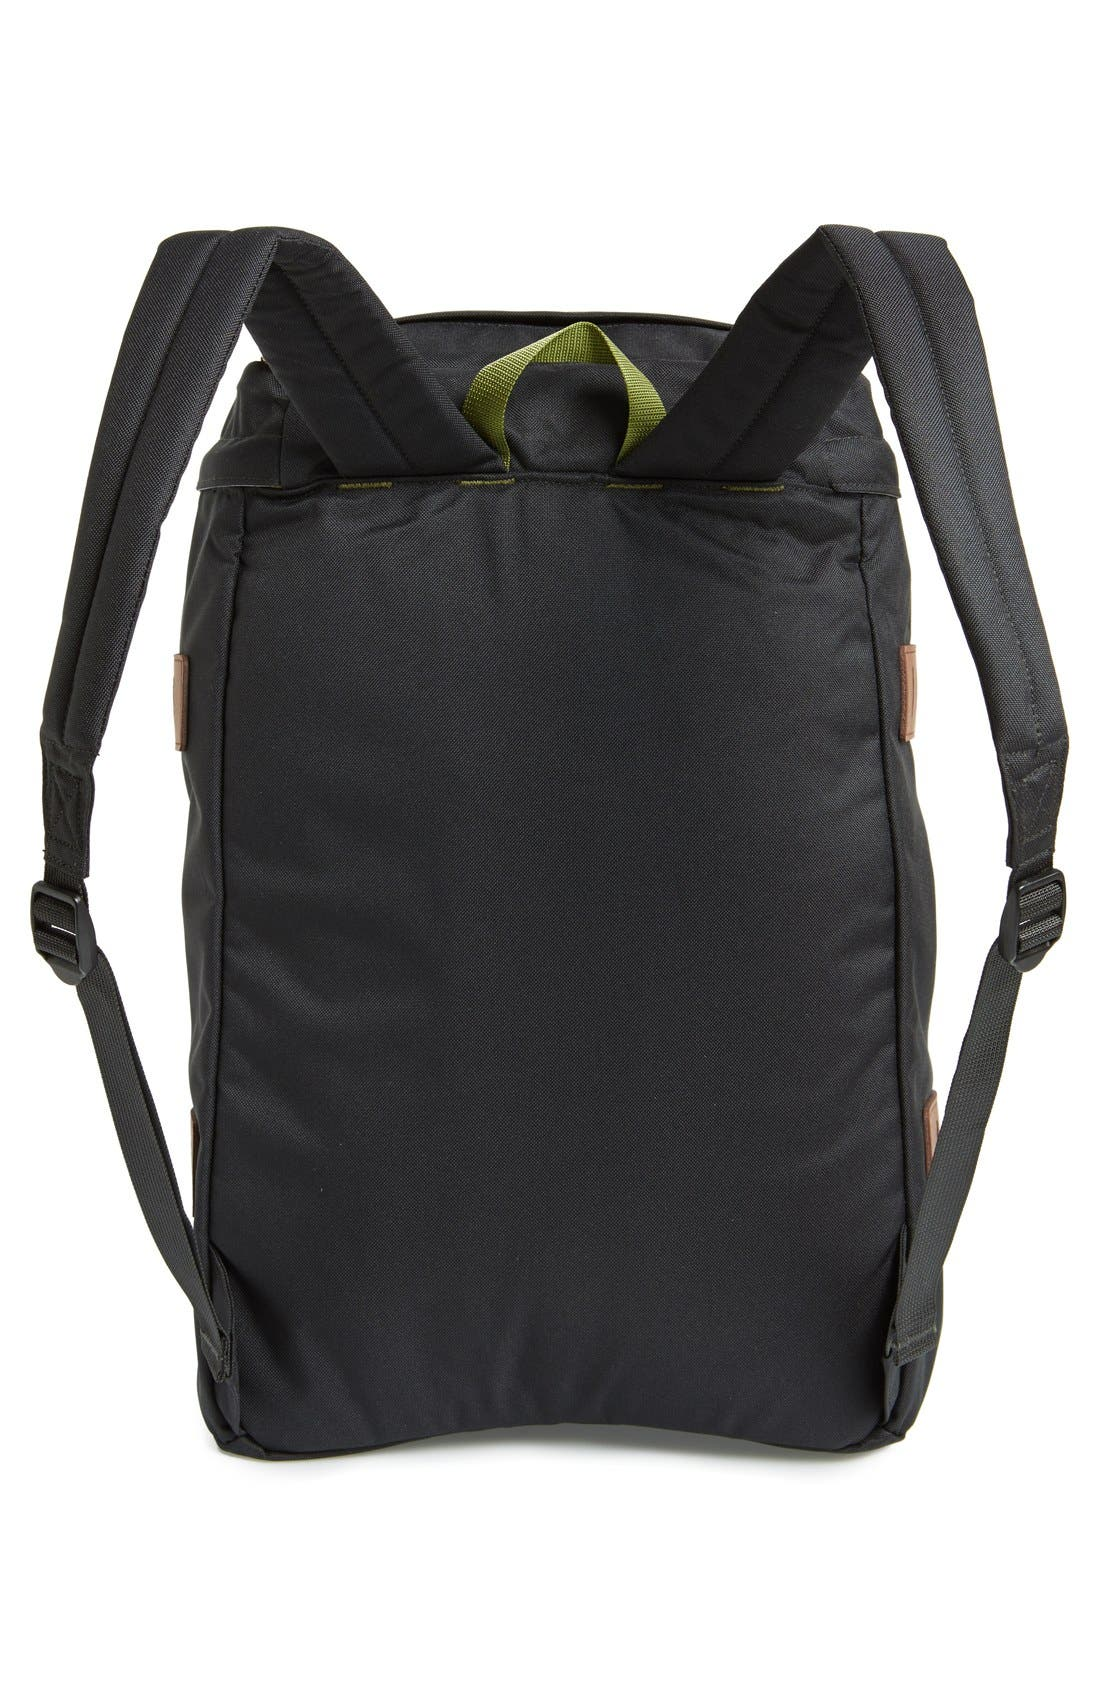 Alternate Image 3  - Patagonia 'Toromiro' Backpack (22 Liter)